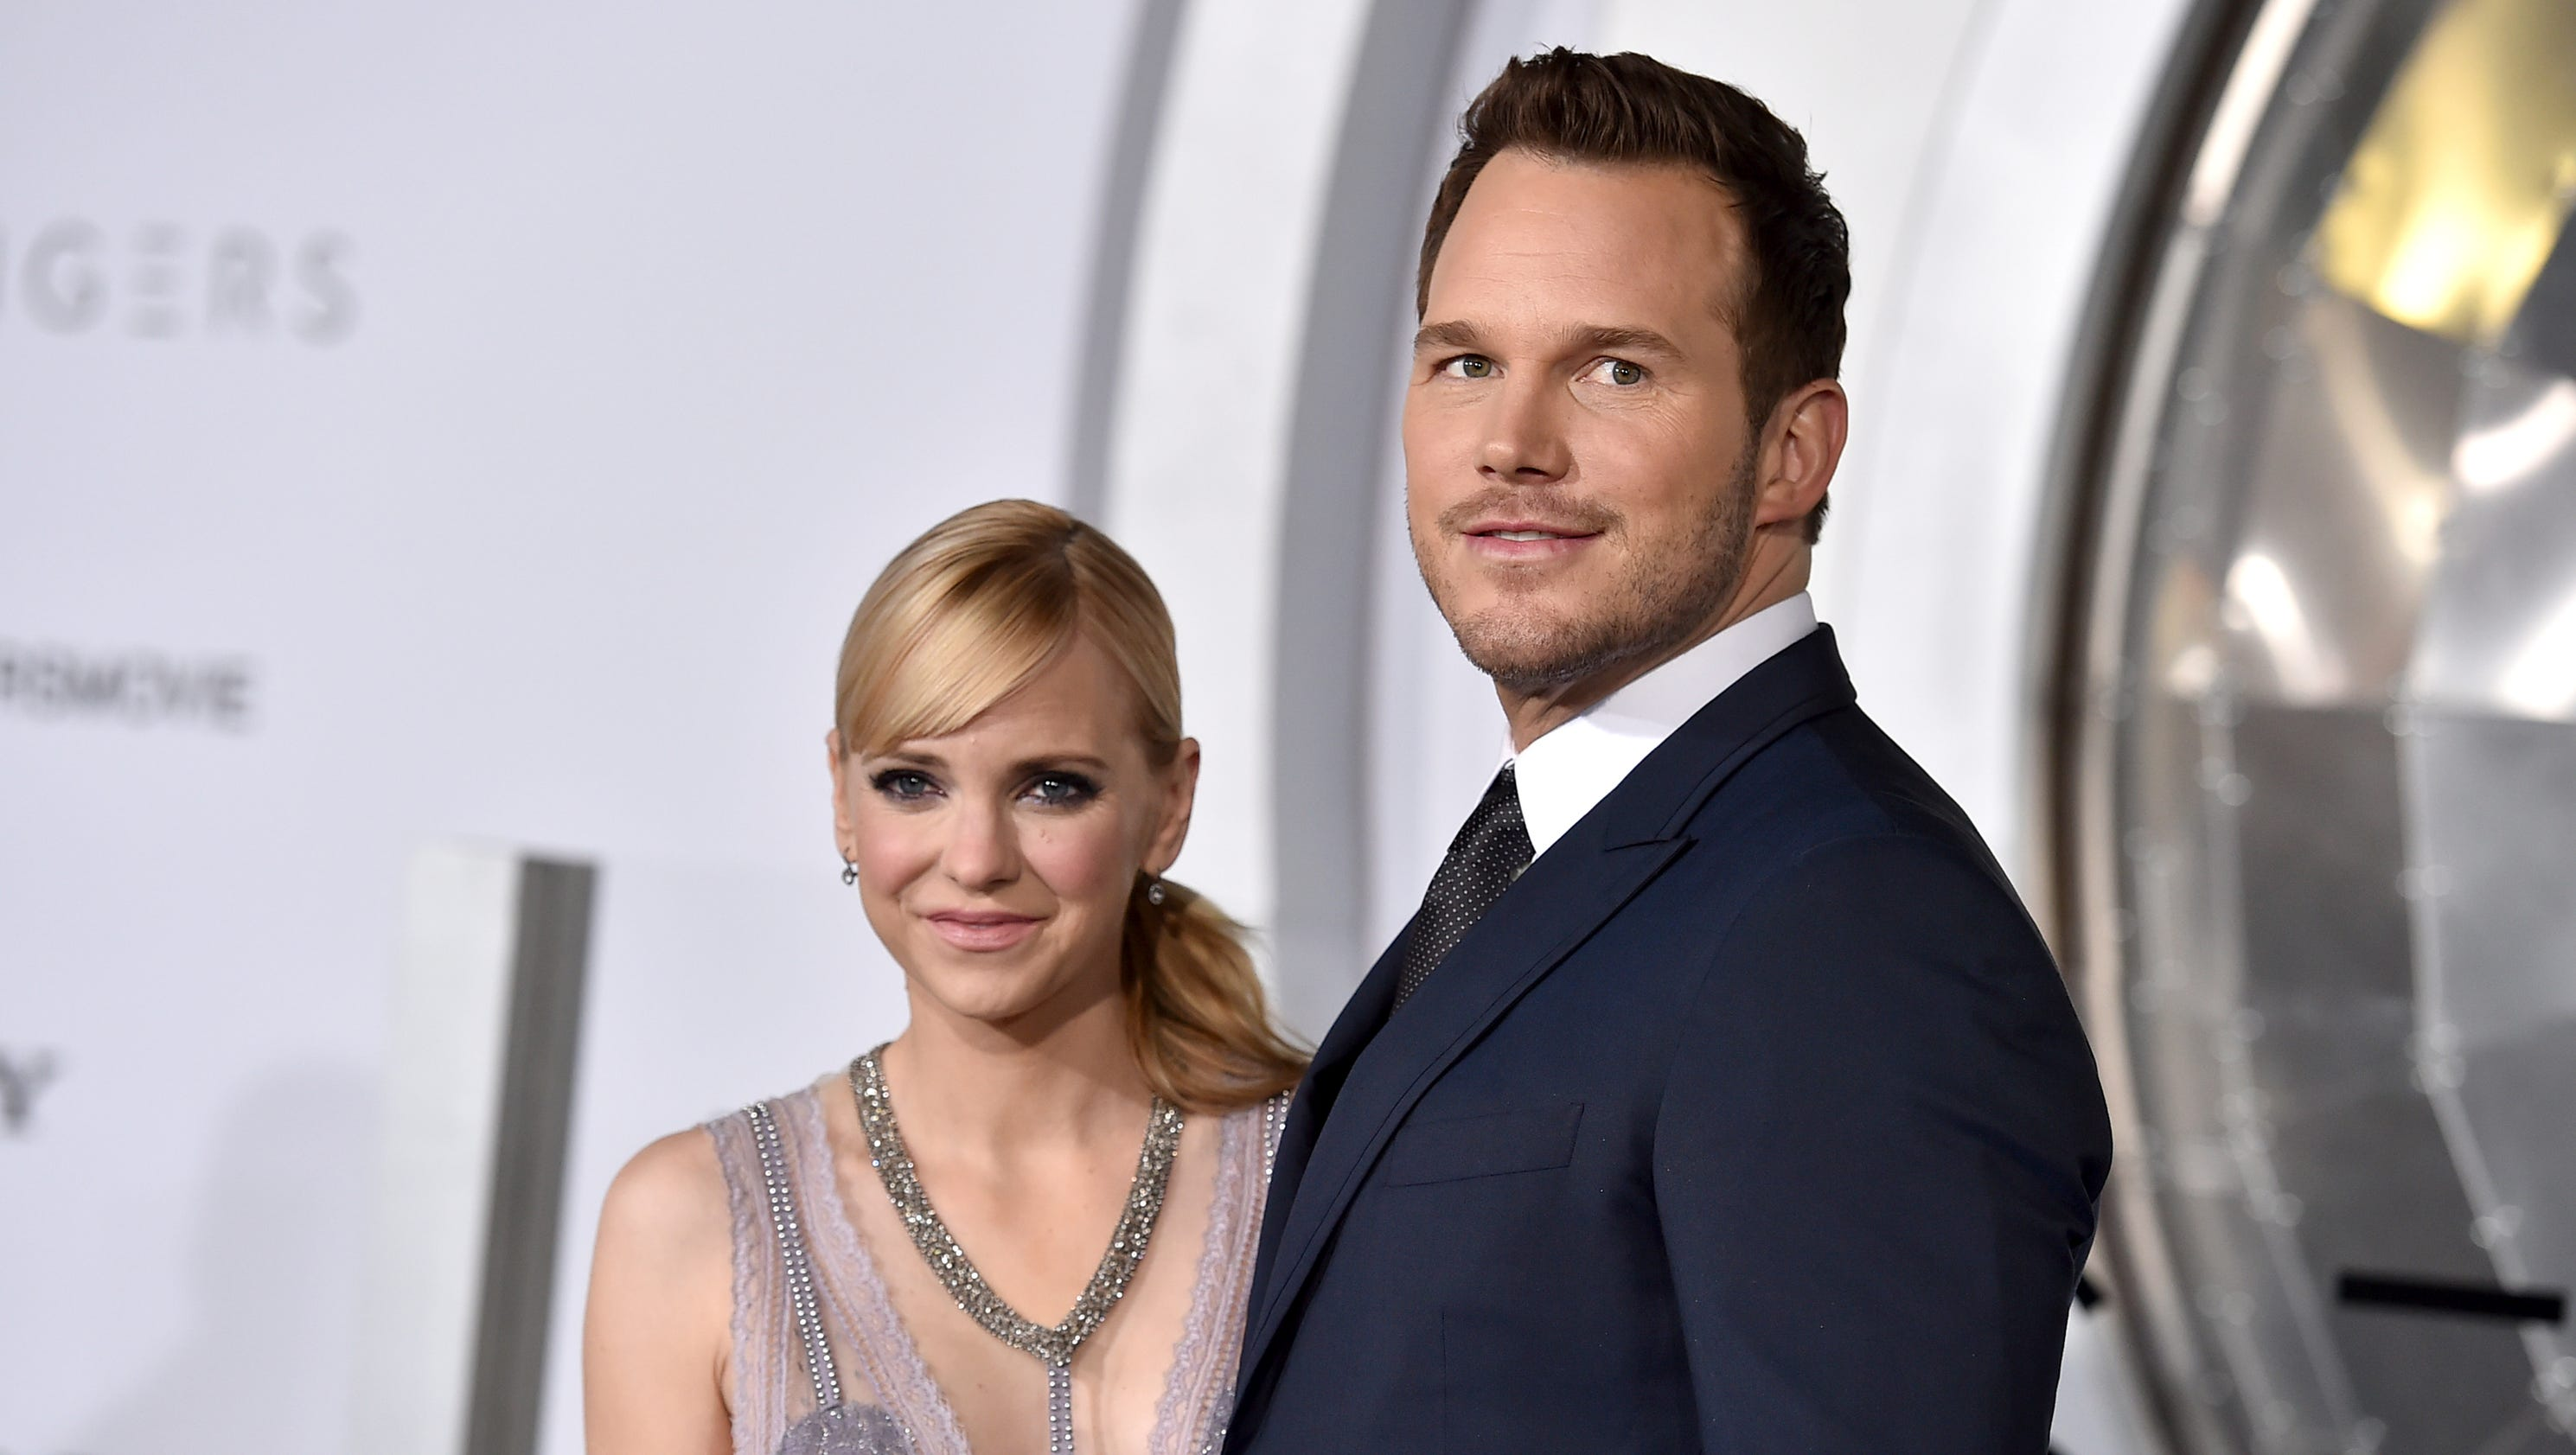 Chris Pratt thanks Jesus Christ in first appearance since split with Anna Faris